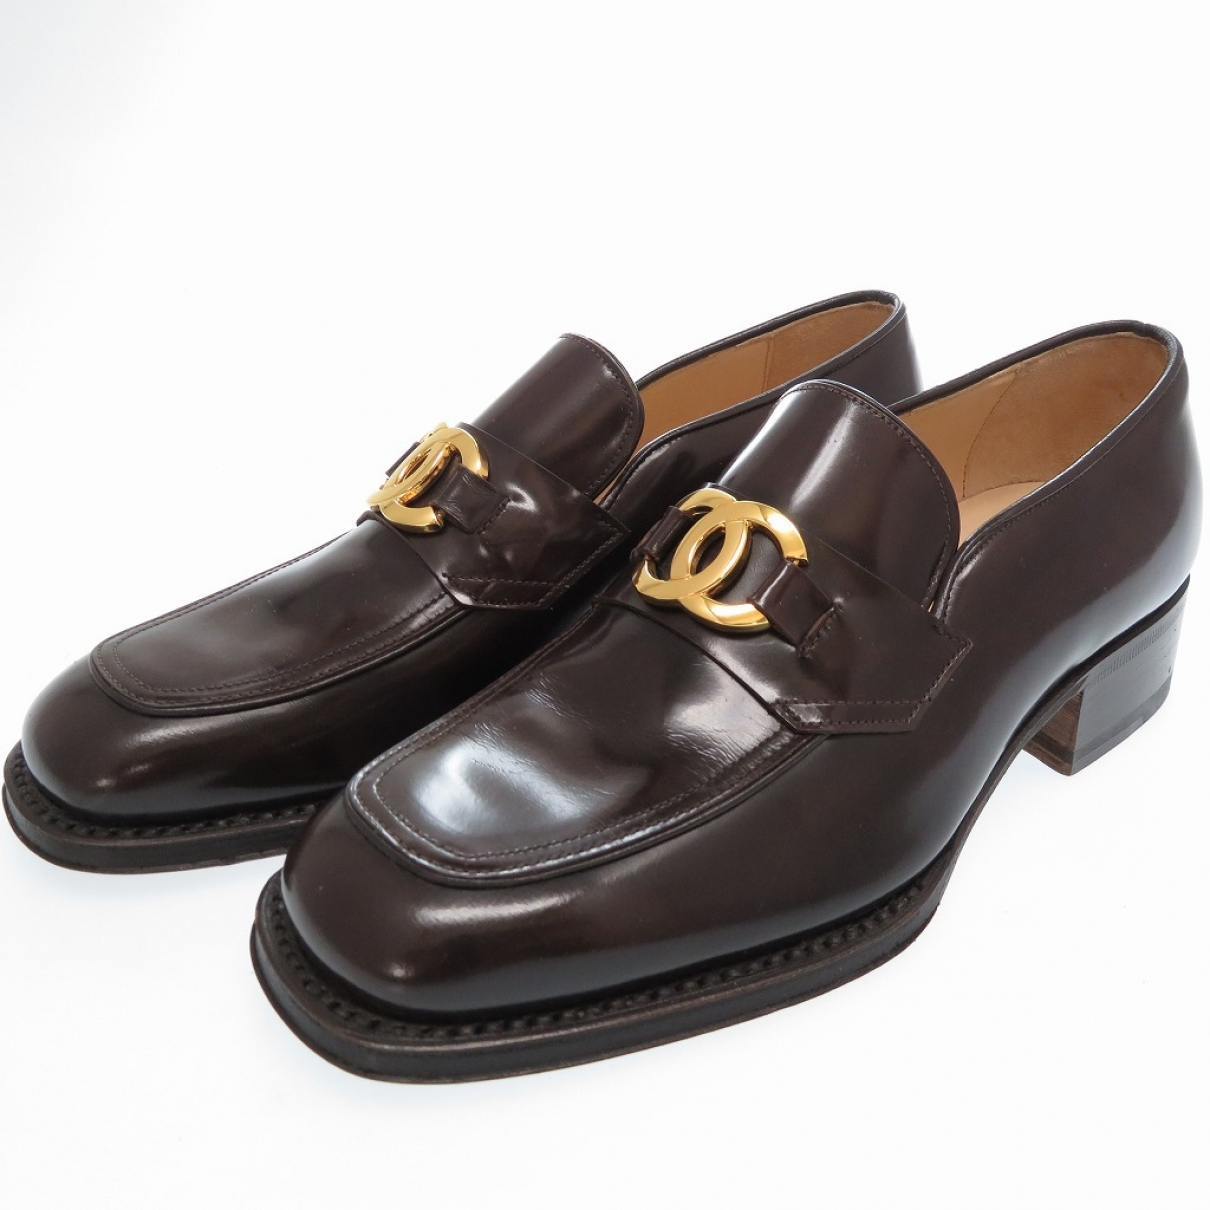 Chanel \N Brown Leather Flats for Women 36 EU